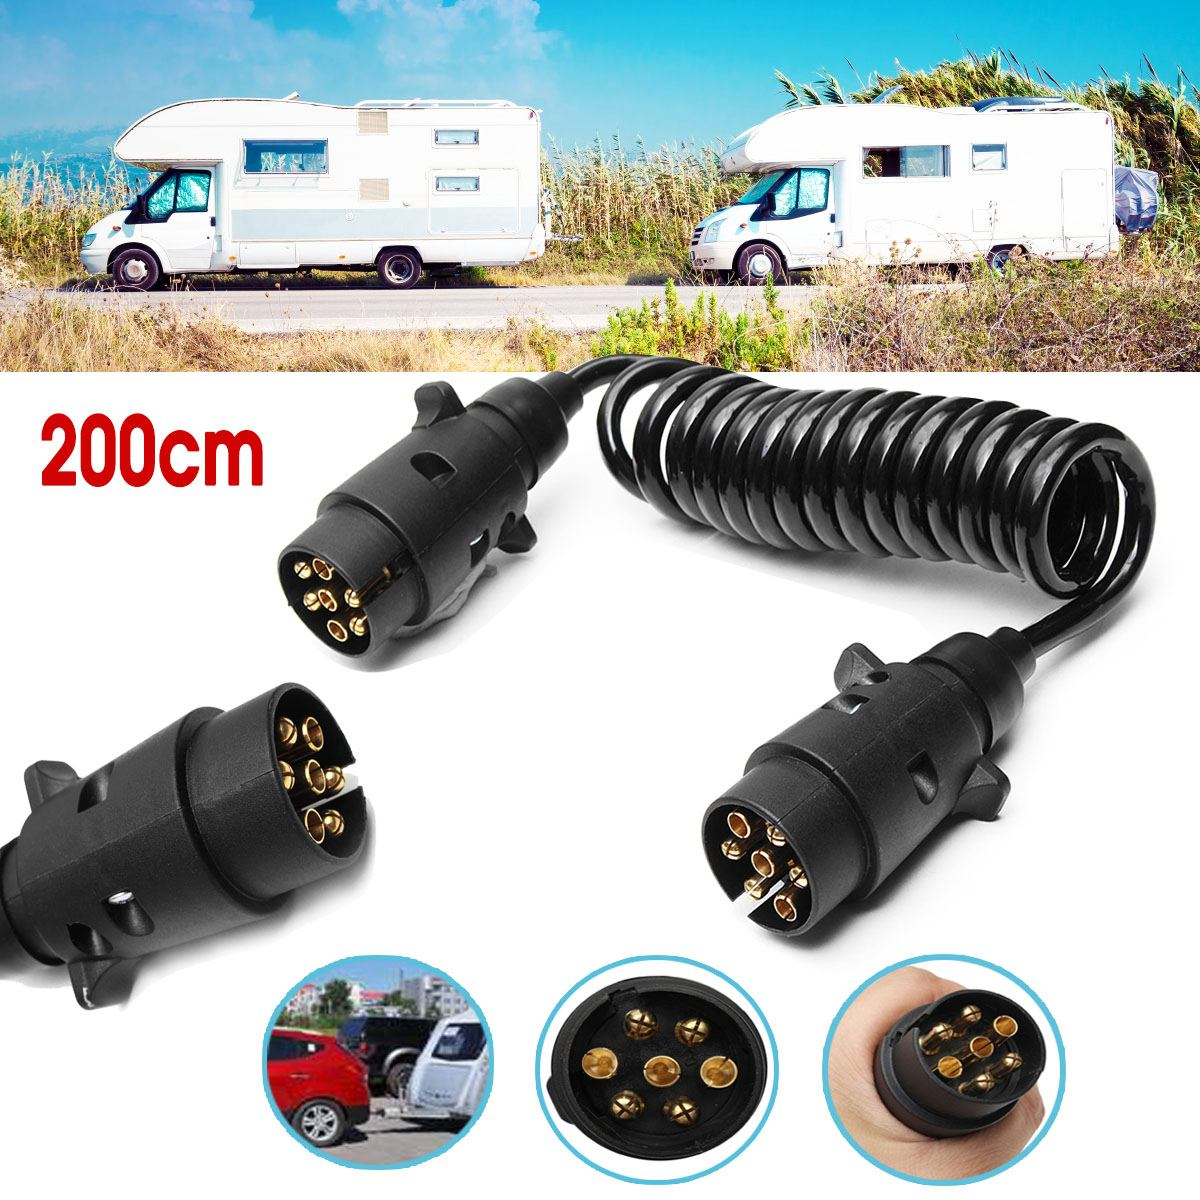 Aliexpress Com   Buy 2m 7 Pin Car Towing Trailer Light Board Extension Cable Lead Truck Plug